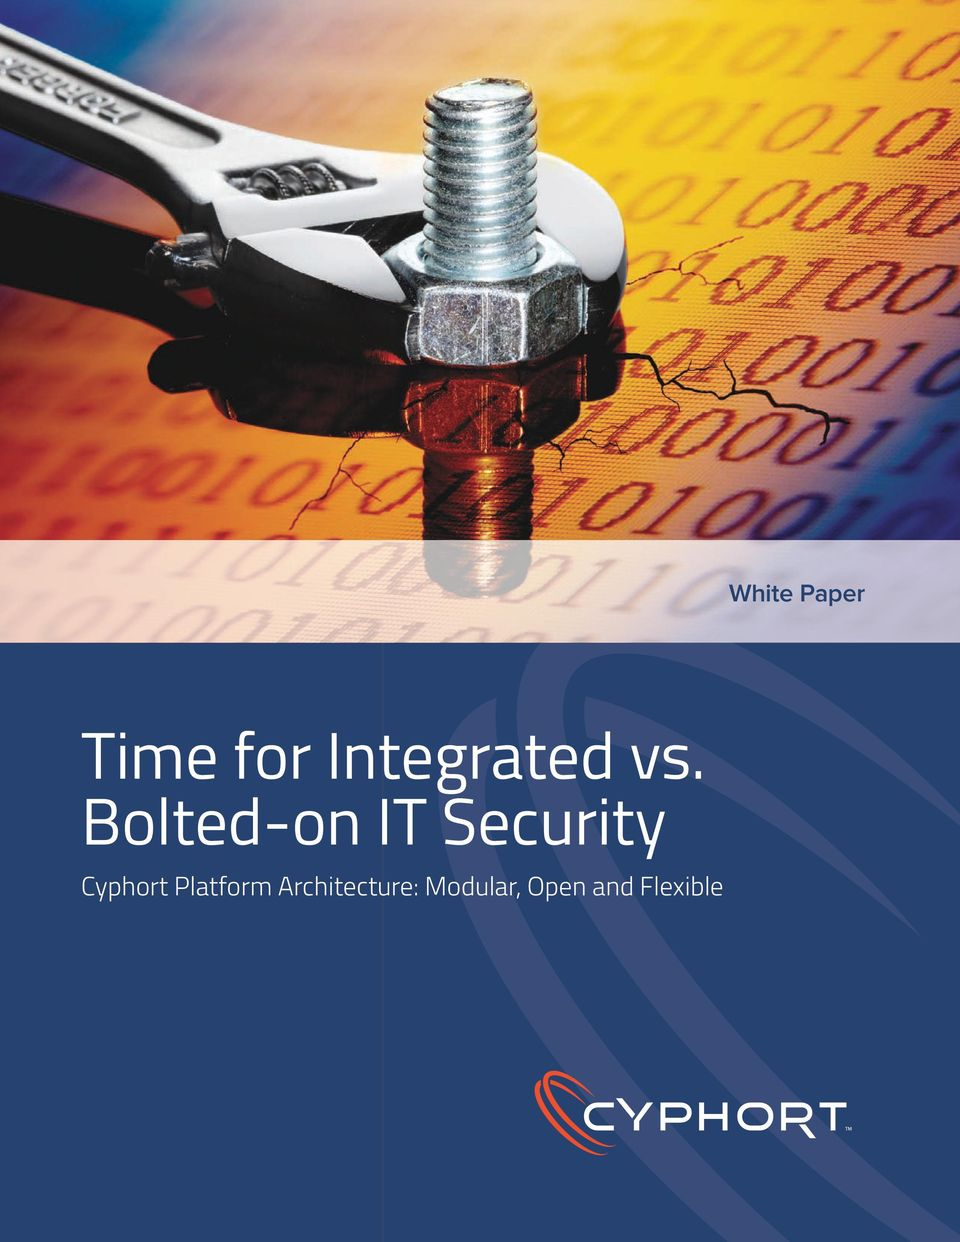 Bolted-on IT Security